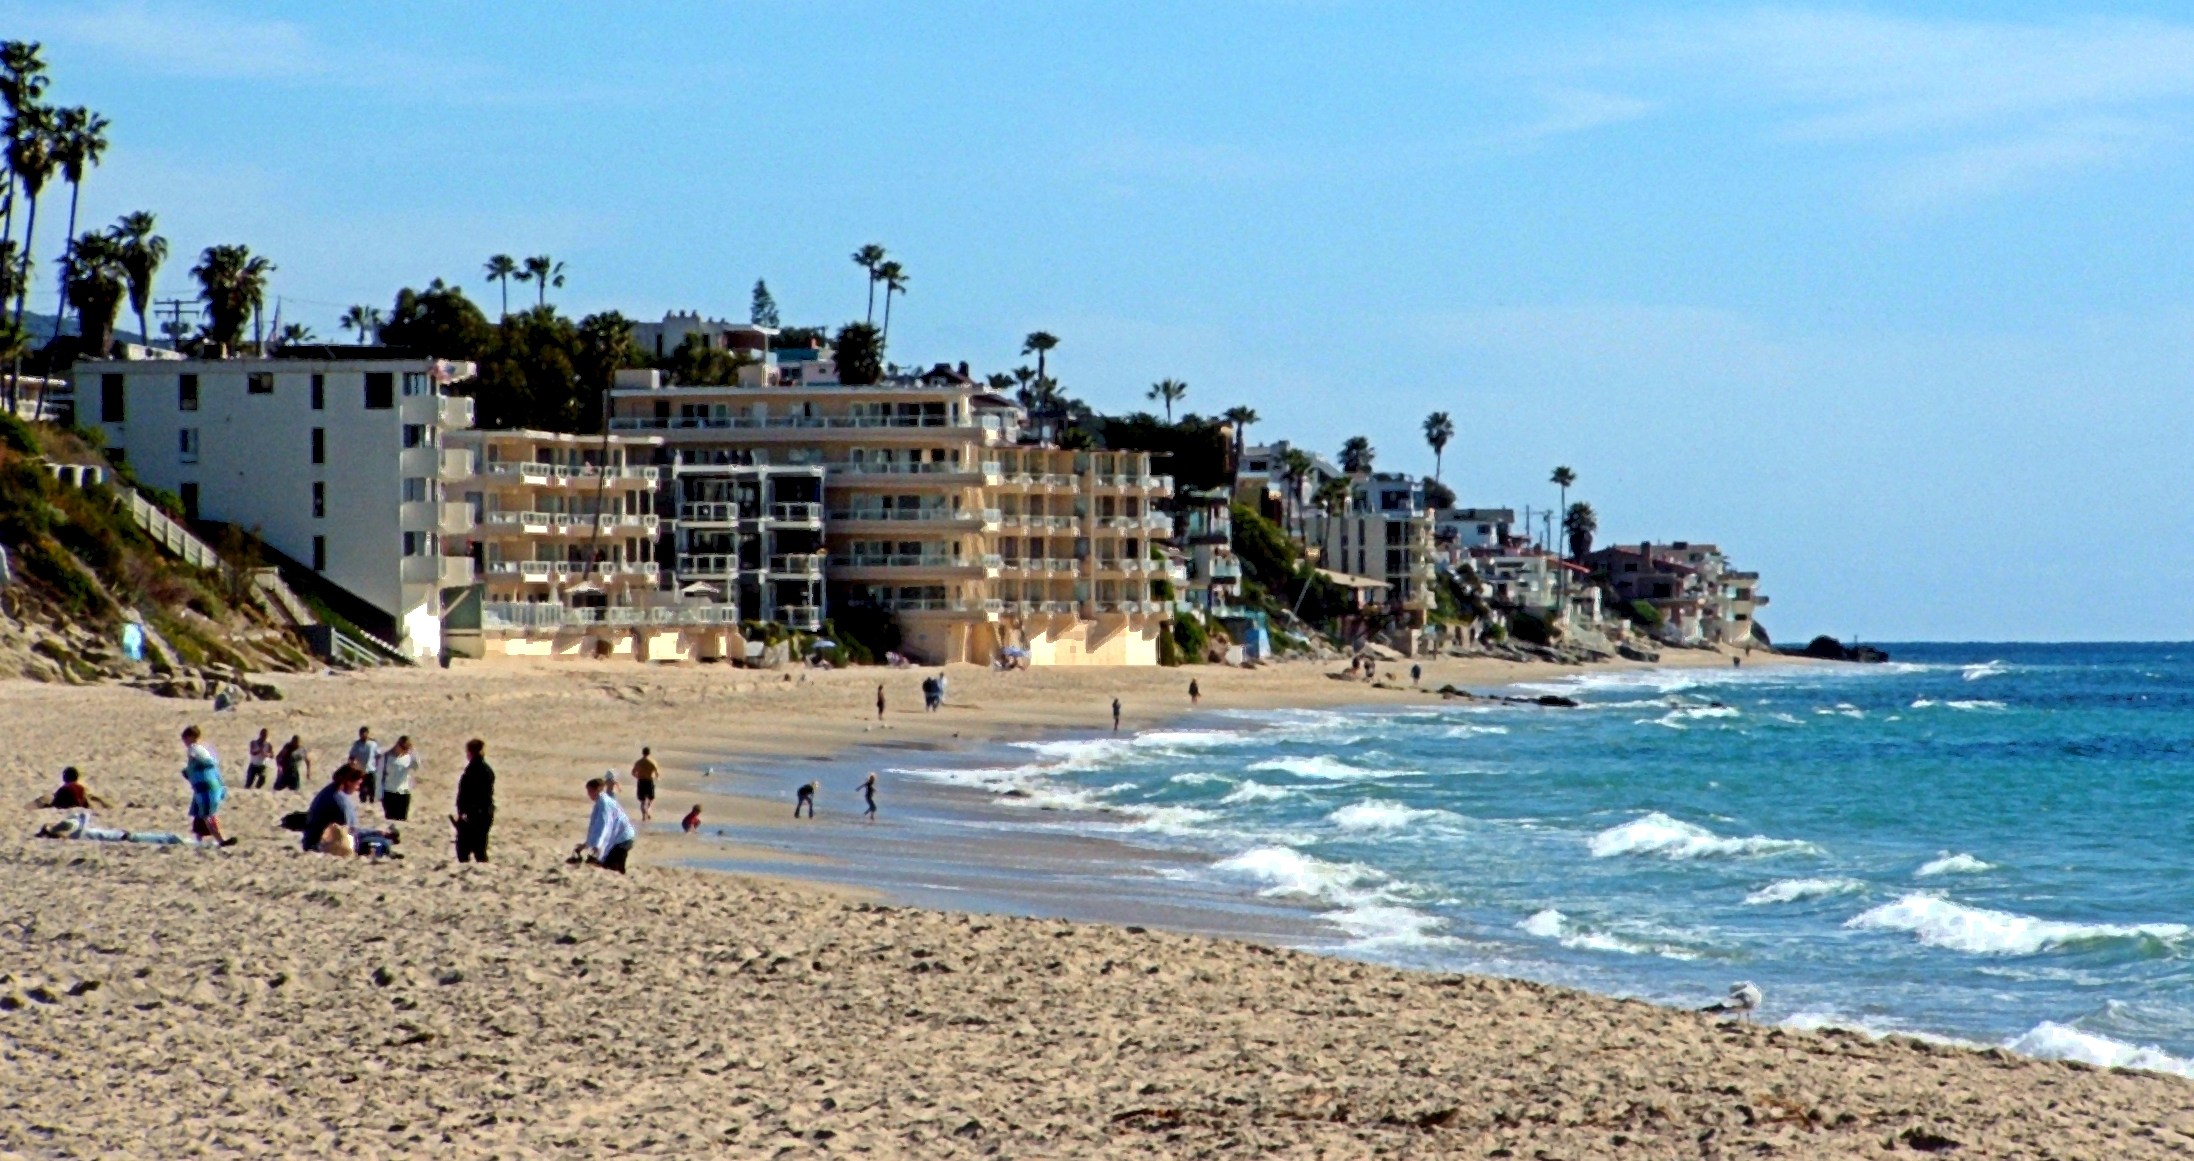 Movies Filmed In Laguna Beach Ca